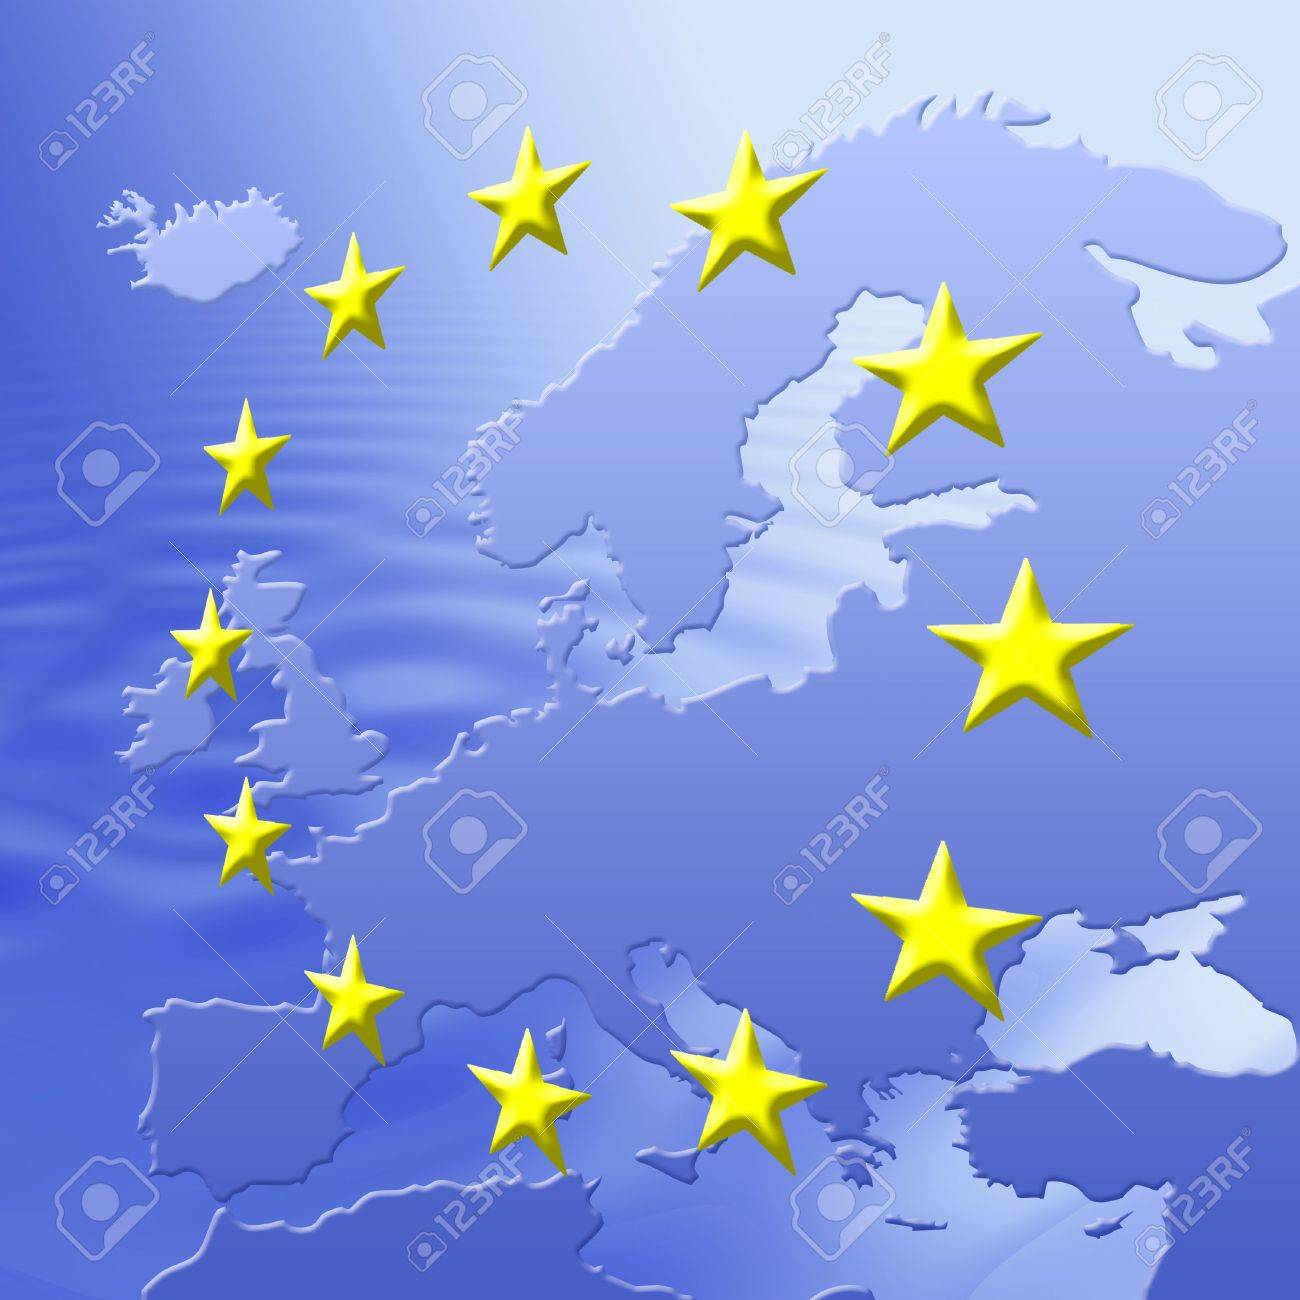 Continent Of Europe Map With EU Stars, Symbolic Illustration of European Union Stock Photo - 3057262